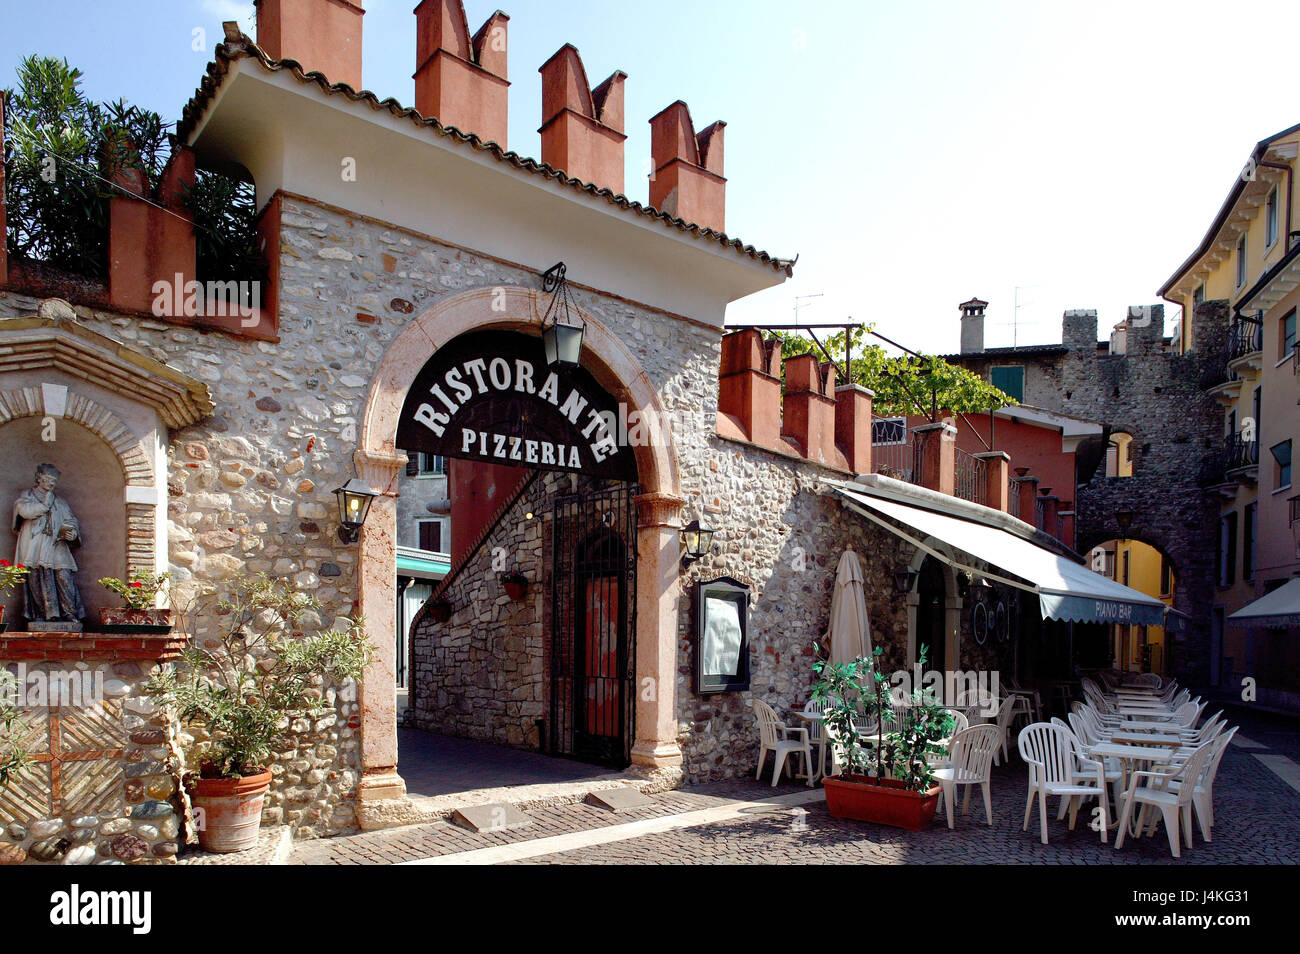 Restaurants In Bardolino Bardolino Cafe Stock Photos And Bardolino Cafe Stock Images